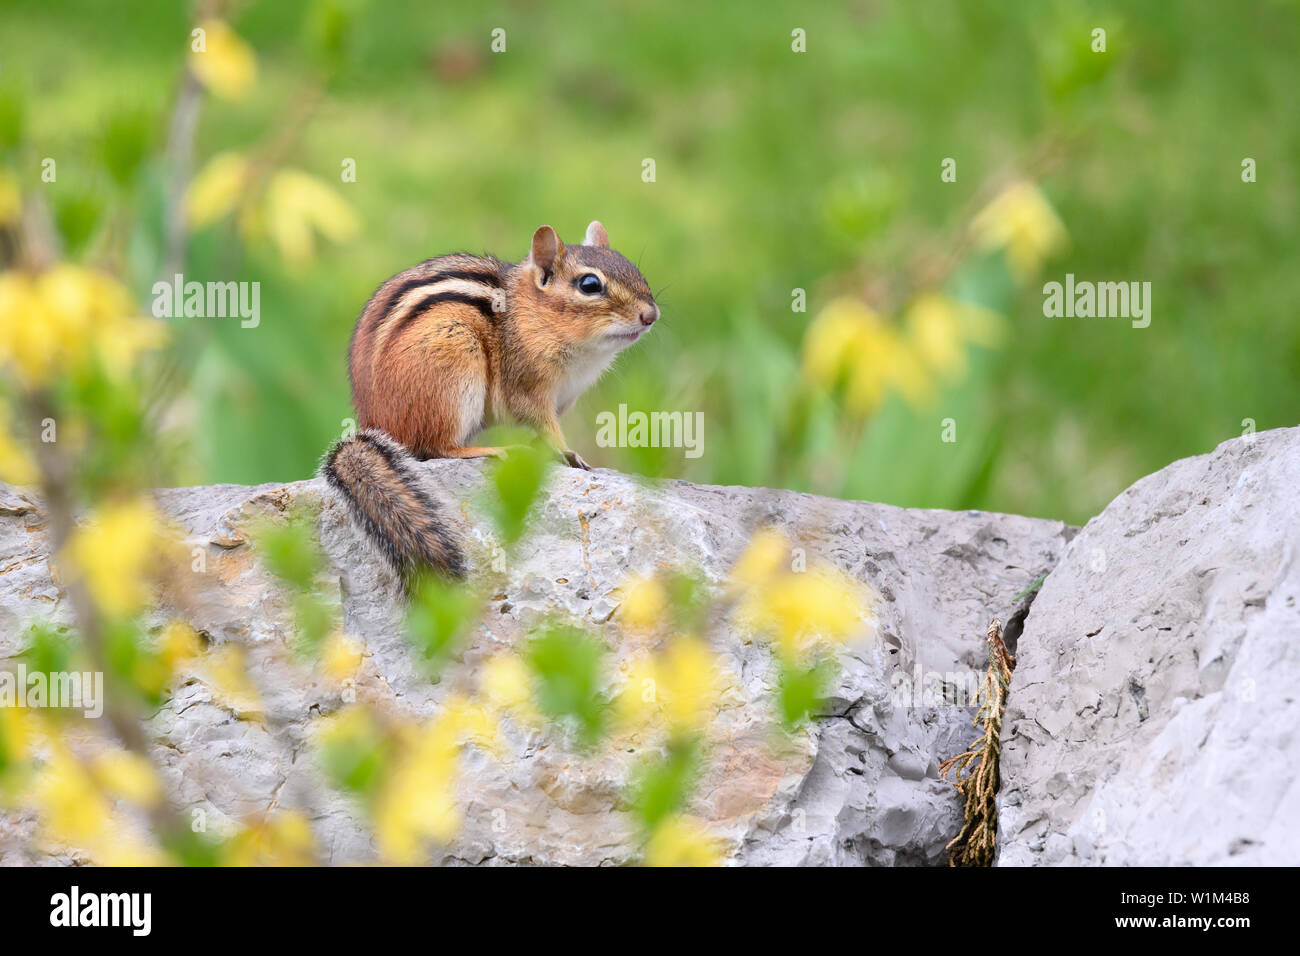 An Eastern Chipmunk poses on a stone wall, surrounded by flowering forsythia, in Scarborough, Ontario. Stock Photo